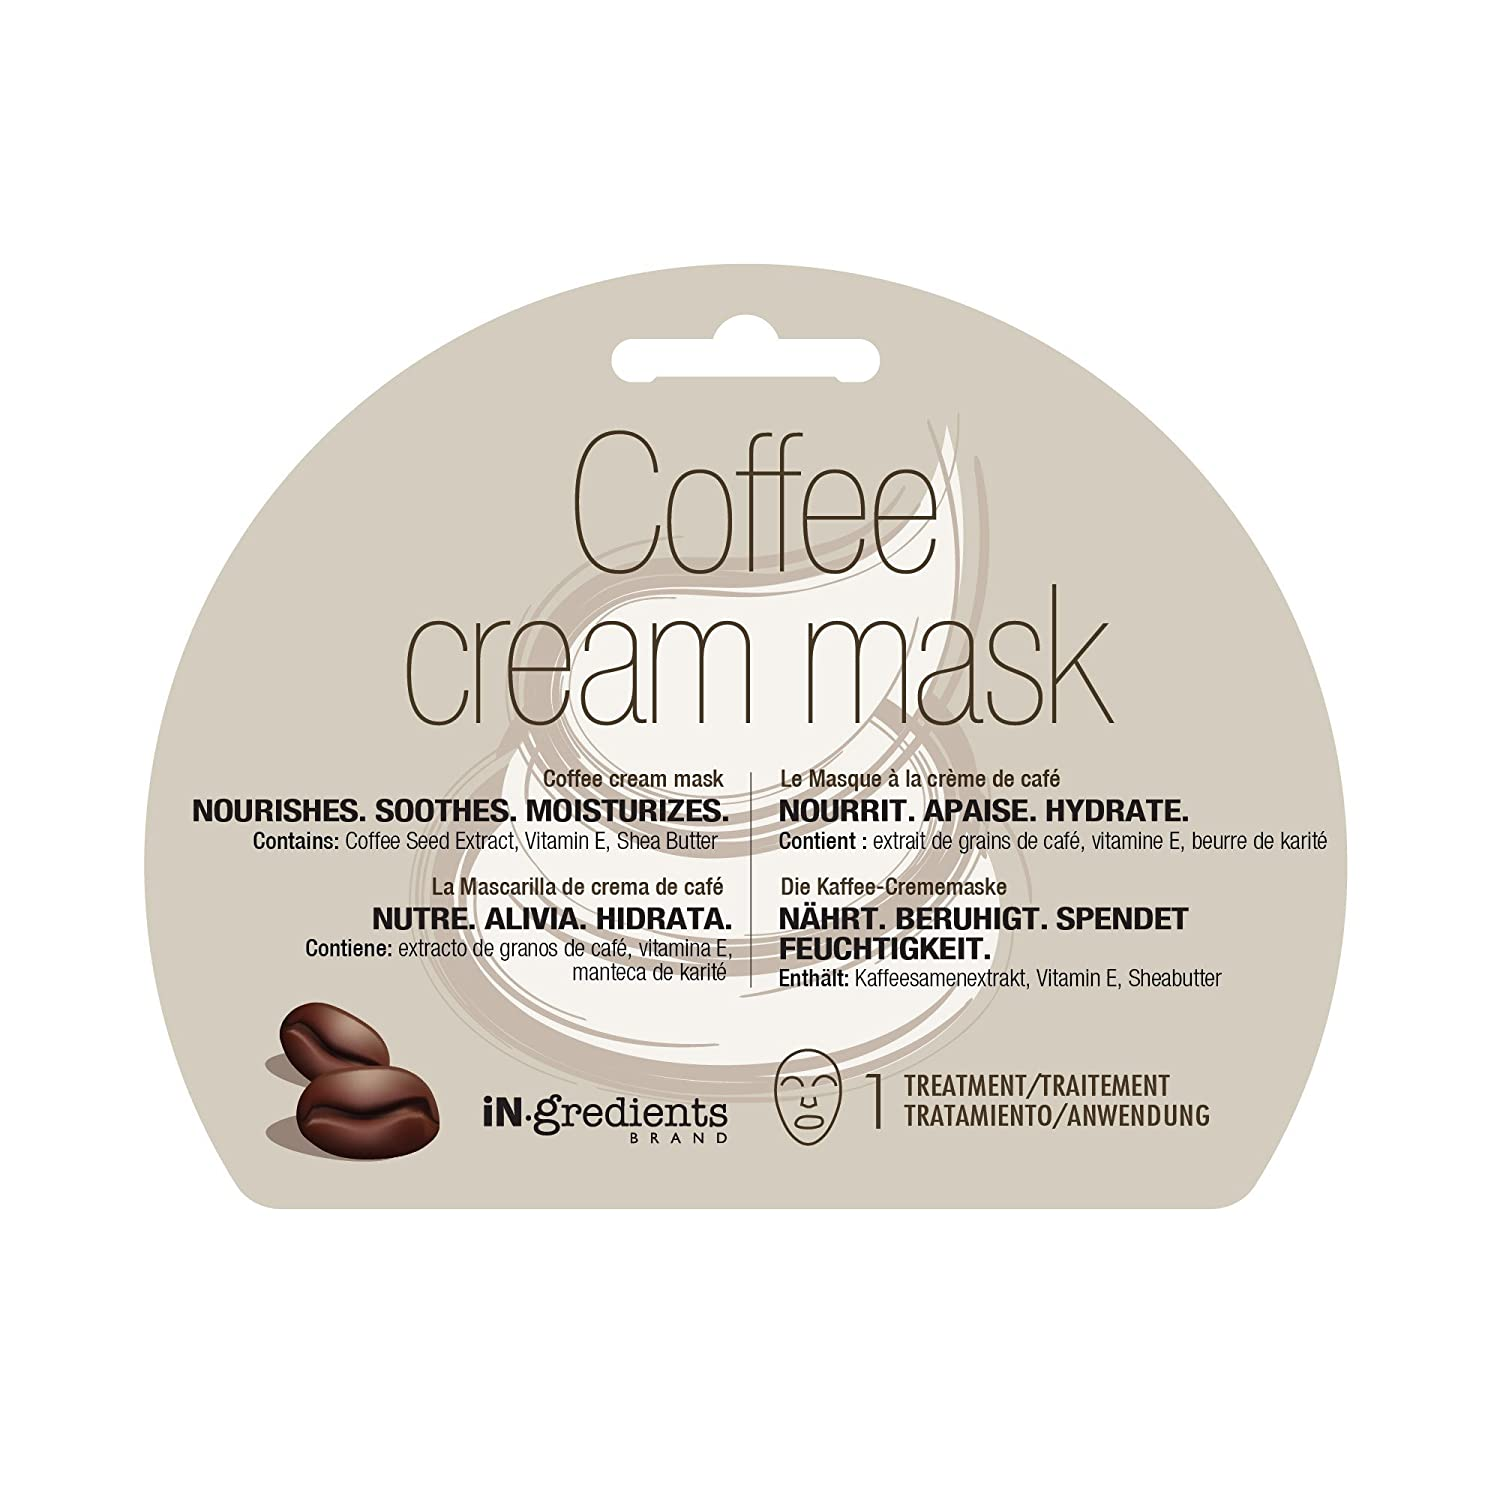 Amazon.com : iN.gredients Coffee Cream Mask - Moisturizing, Cleansing, Exfoliating Pore Refiner for Dehydrated, Sensitive Skin - Made in Korea : Beauty